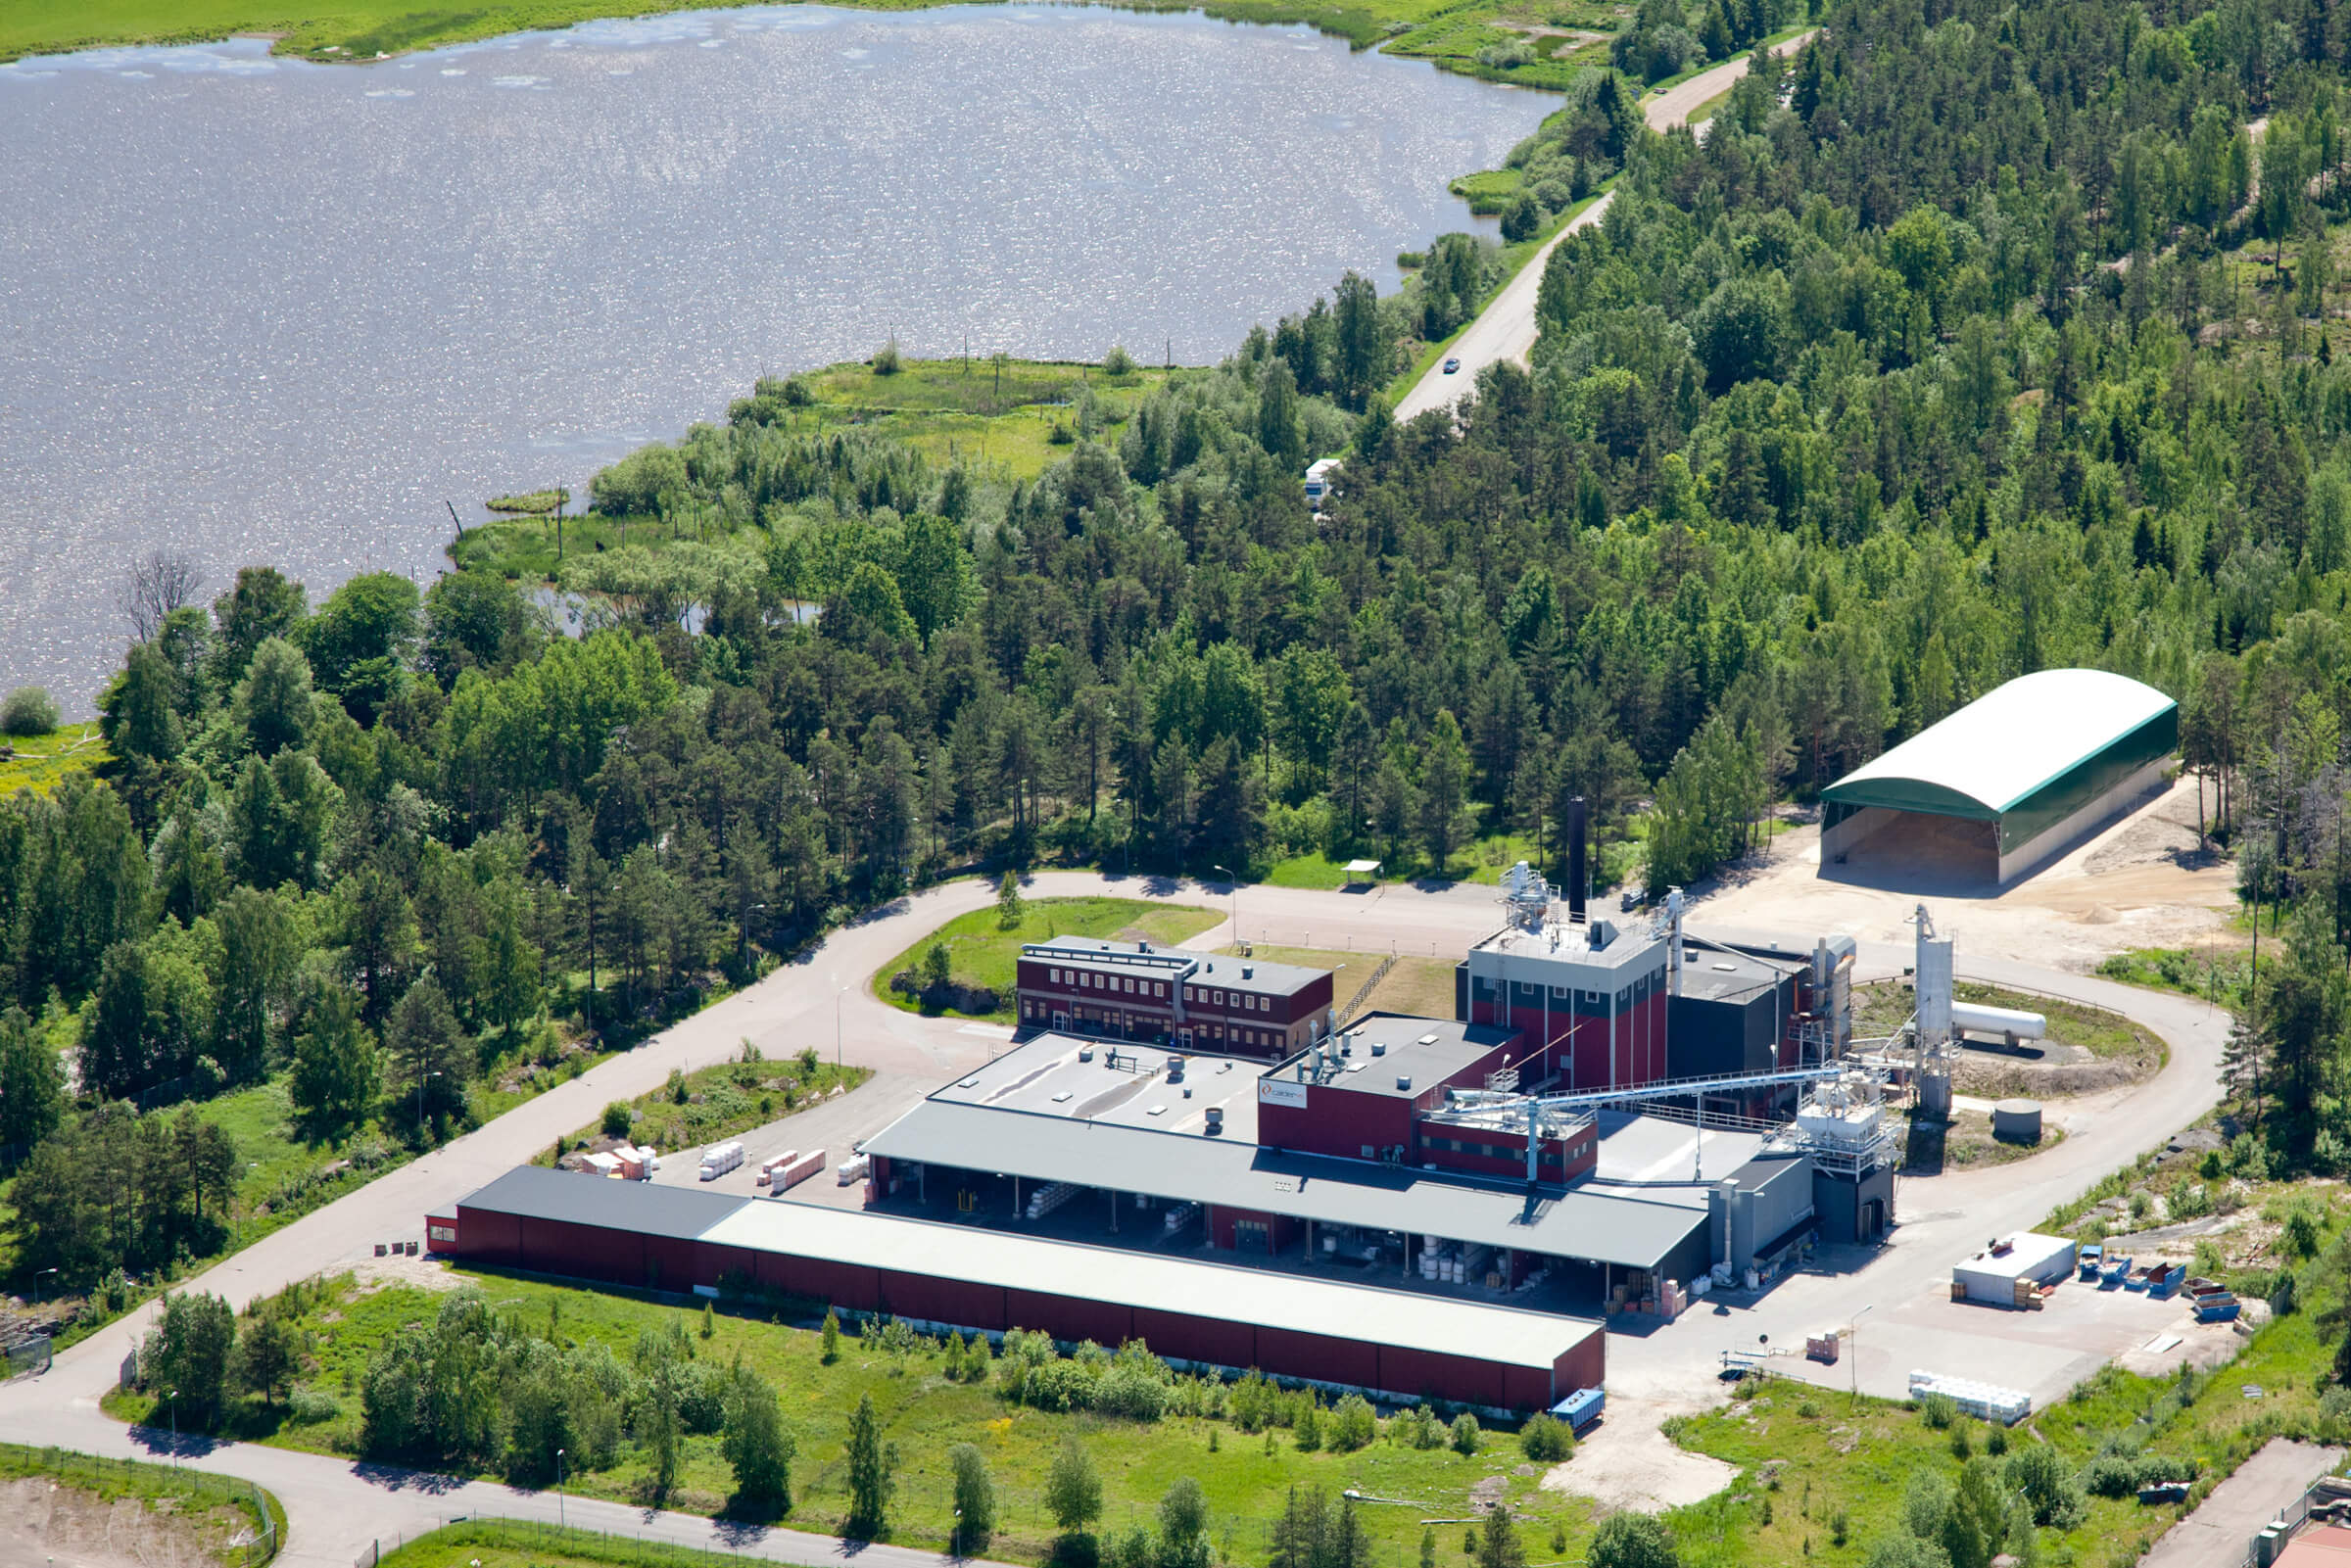 Calderys Refractory Plant in Amal Sweden - Aerial view